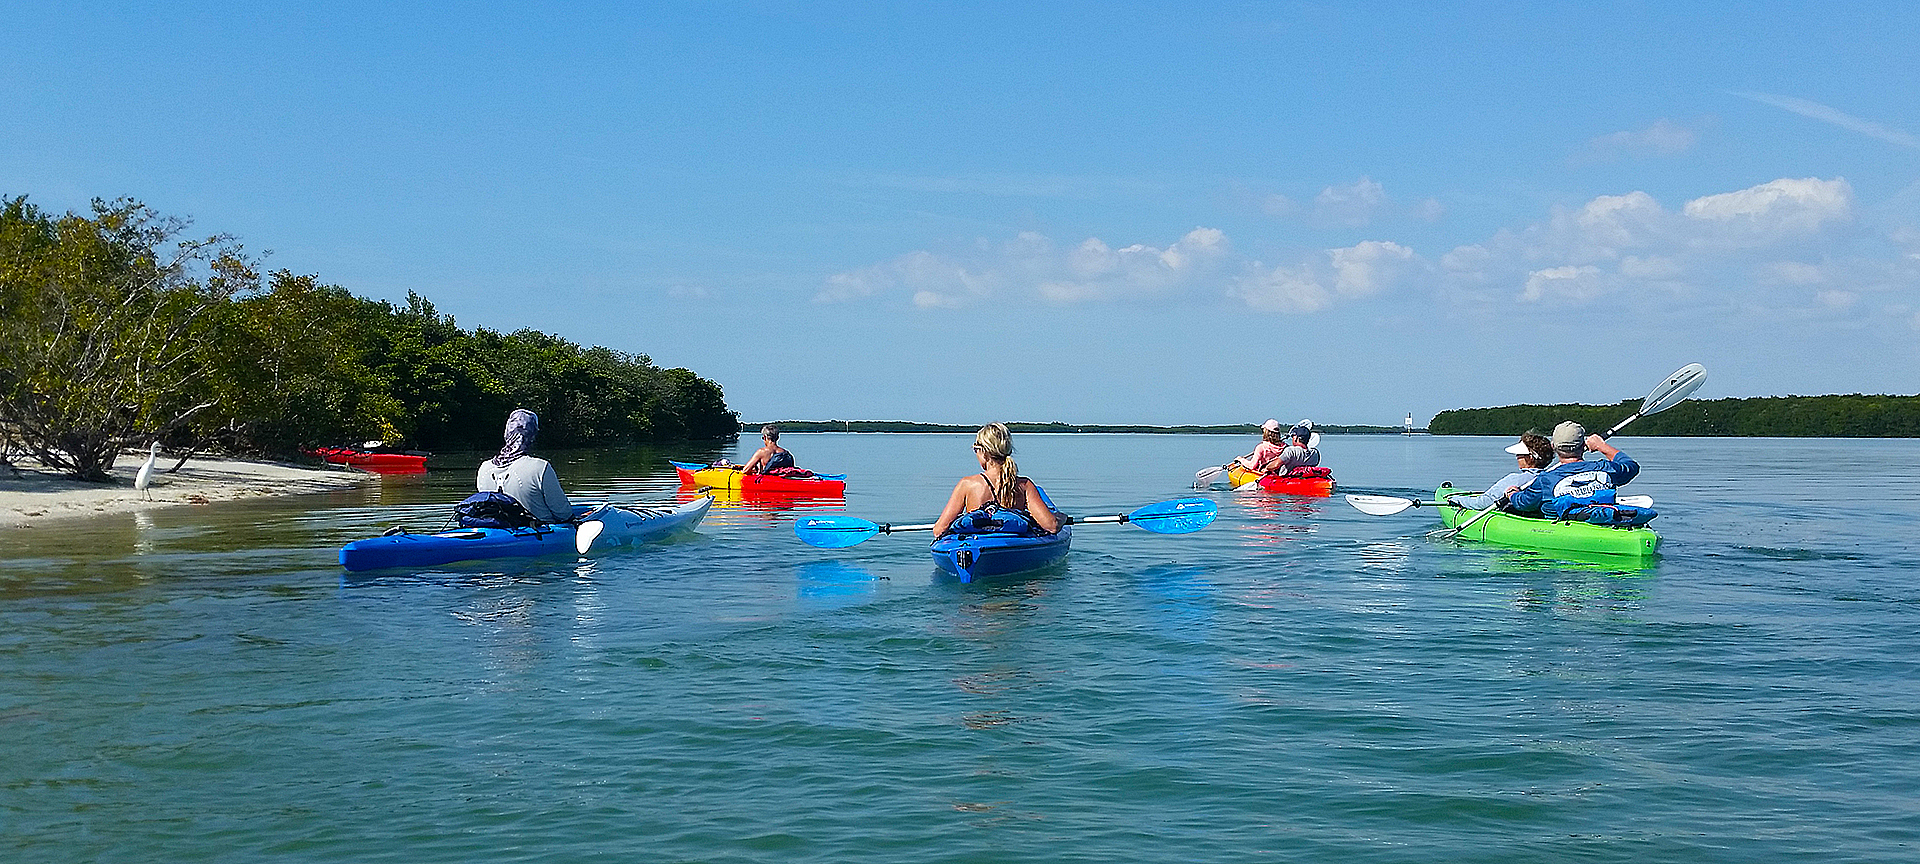 Kayaking is one of our favorite things to do.